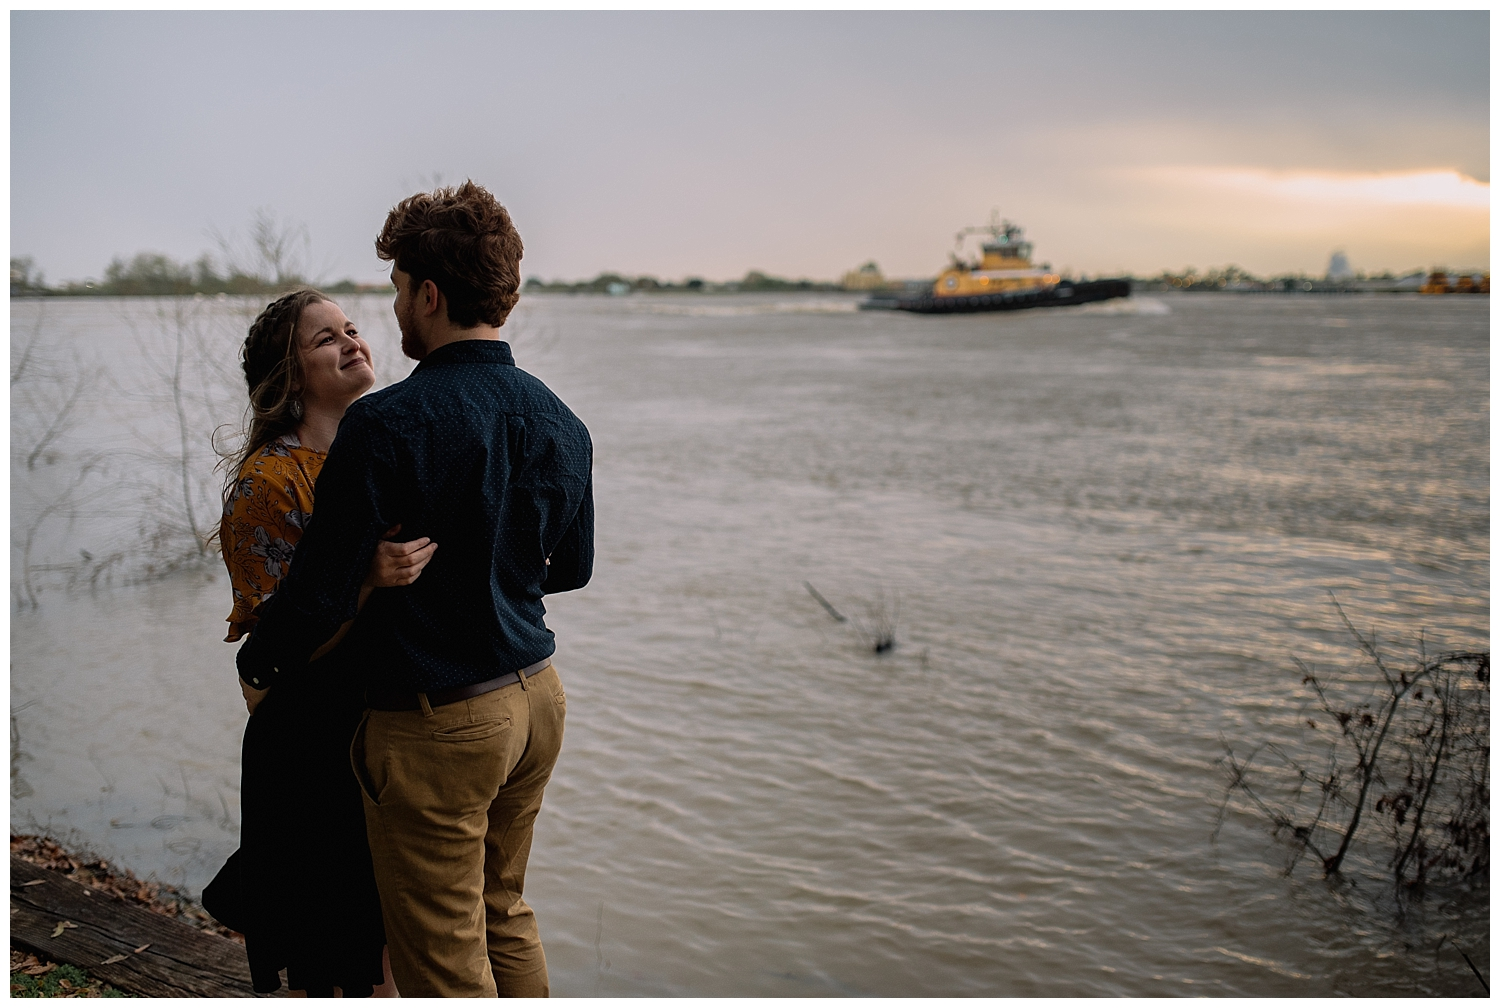 Matt and Carly Engagement - The Fly New Orleans - Kallistia Photography_0046.jpg